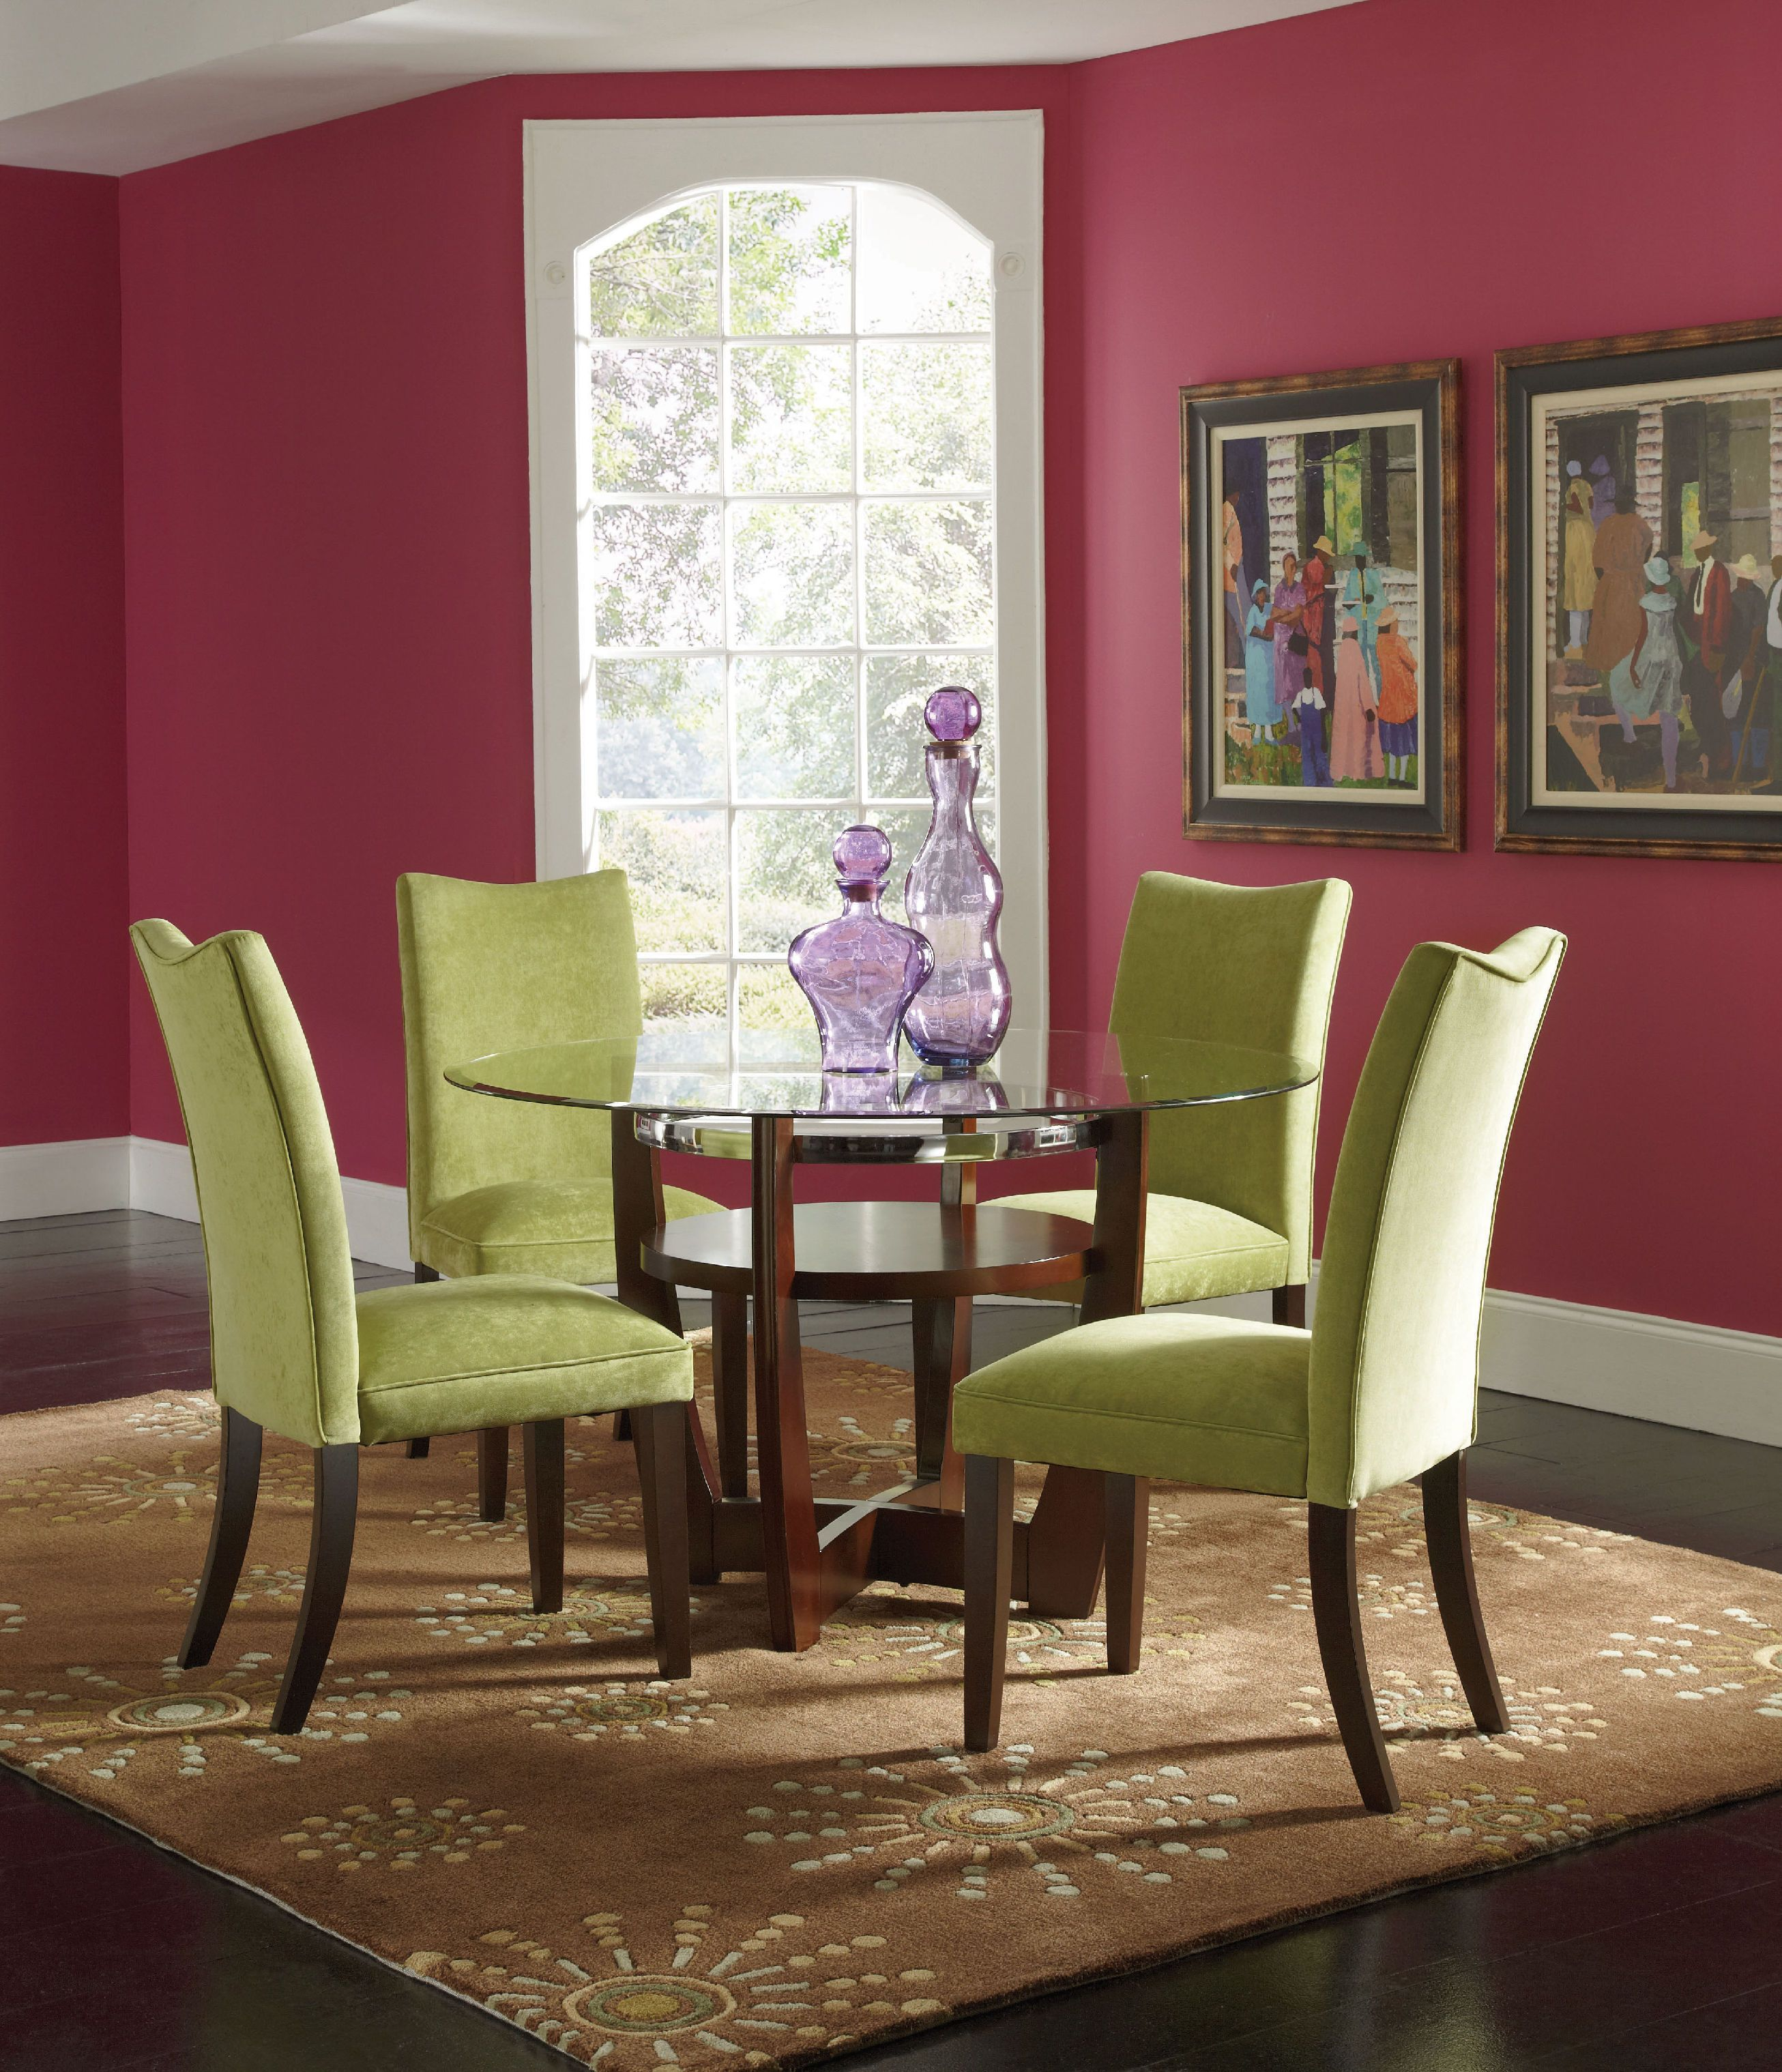 Charmant Standard Furniture Dining Room Chair Parsons Carton Green Velvet Home Chairs  Colorful